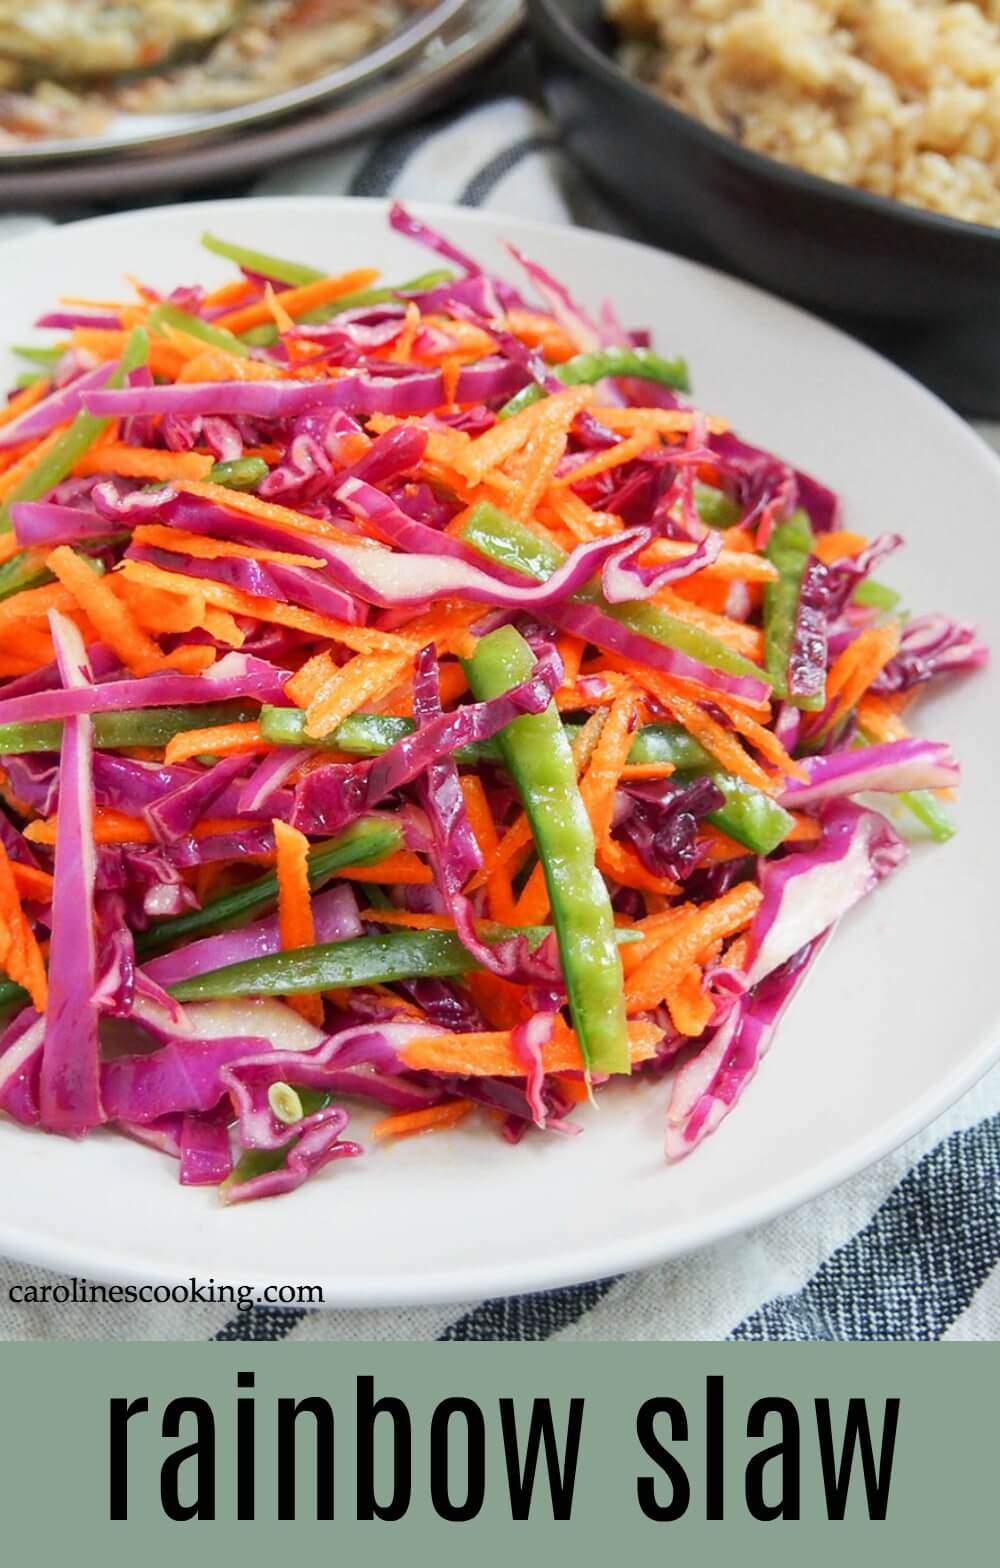 This colorful rainbow slaw is made with red cabbage, carrot and snow peas and a simple sharp-sweet dressing. There's no mayo, just plenty flavor and crunch! An easy, tasty and versatile side. #slaw #nomayoslaw #sidedish #vegan